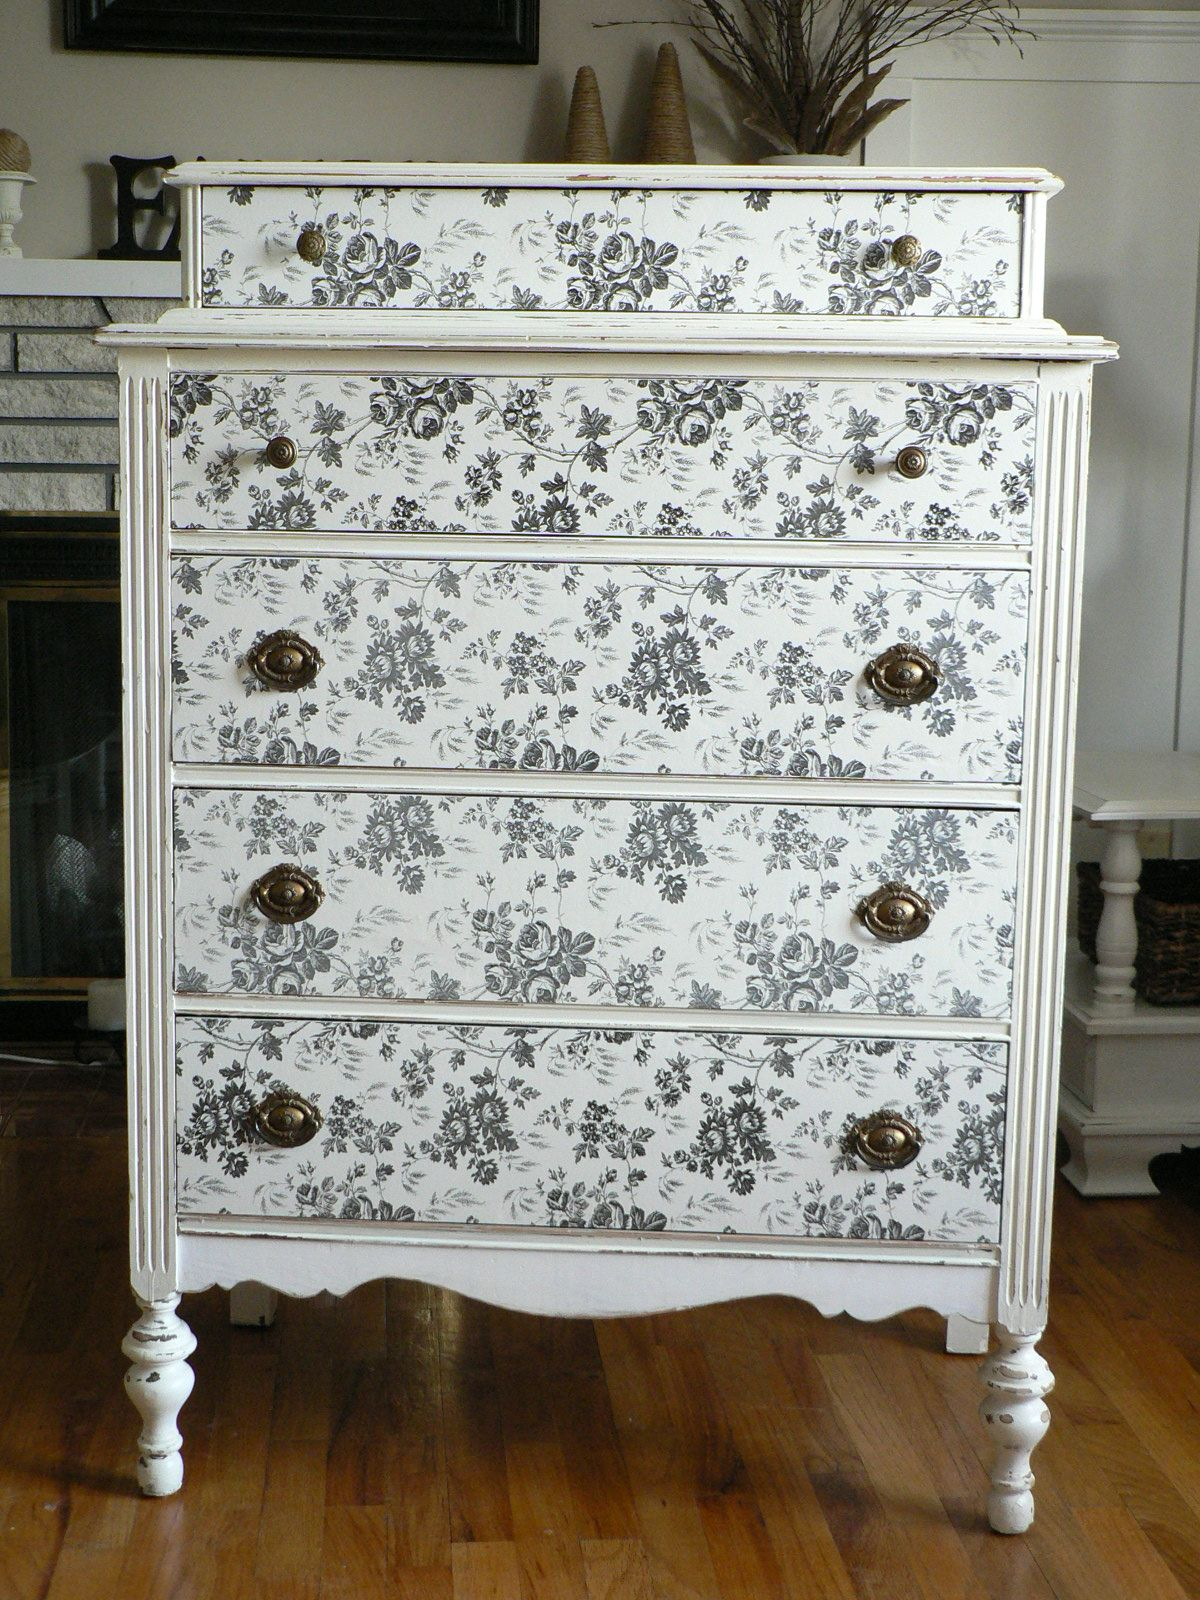 Contact Paper For Furniture Update An Old Dresser With Patterned Paper Vintage Decor Home